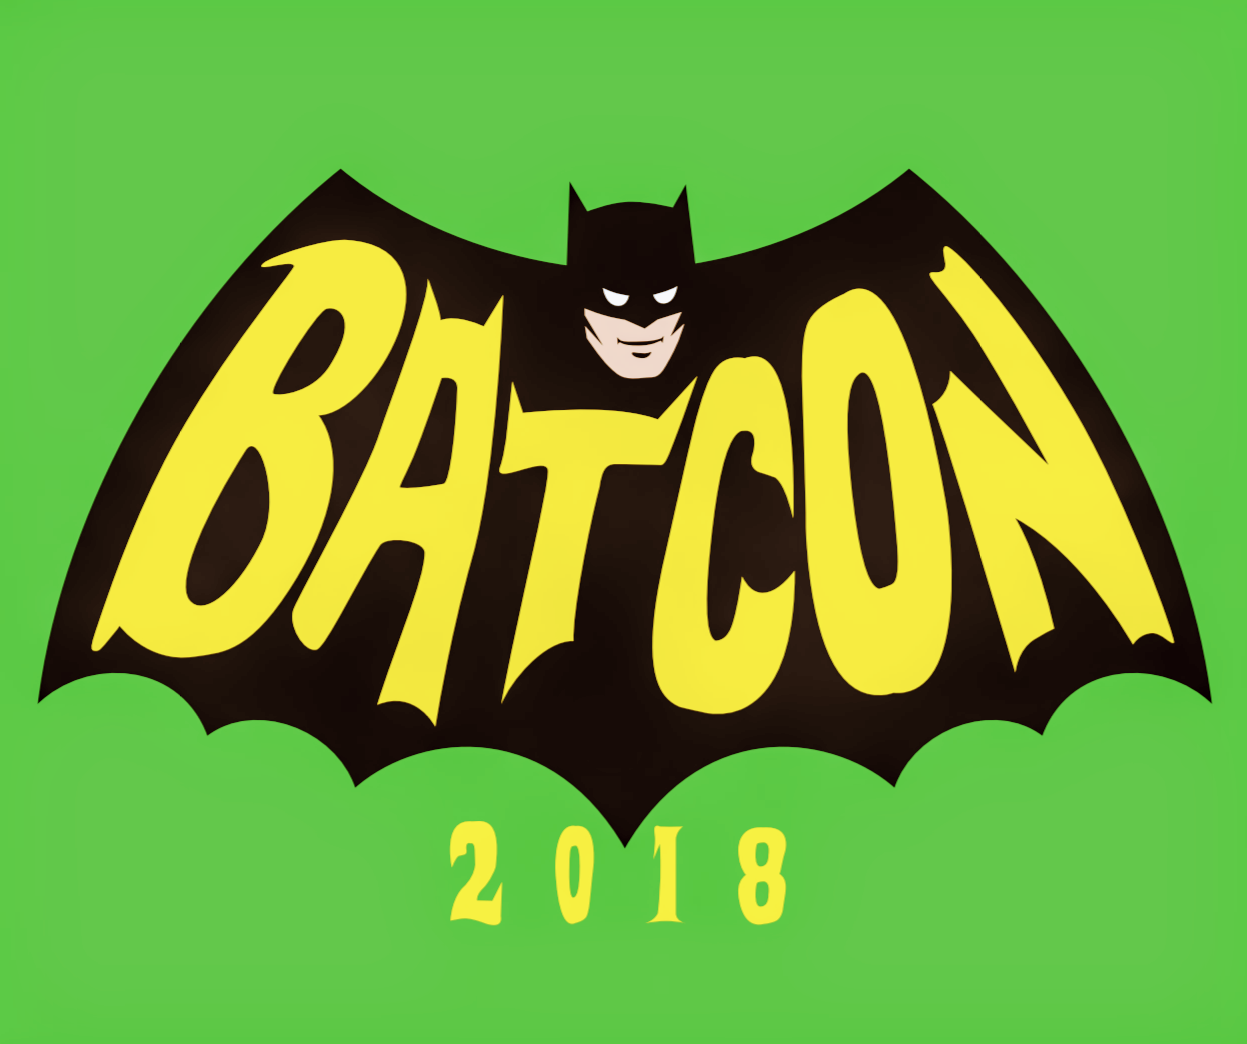 Batcon 2018 T-Shirt